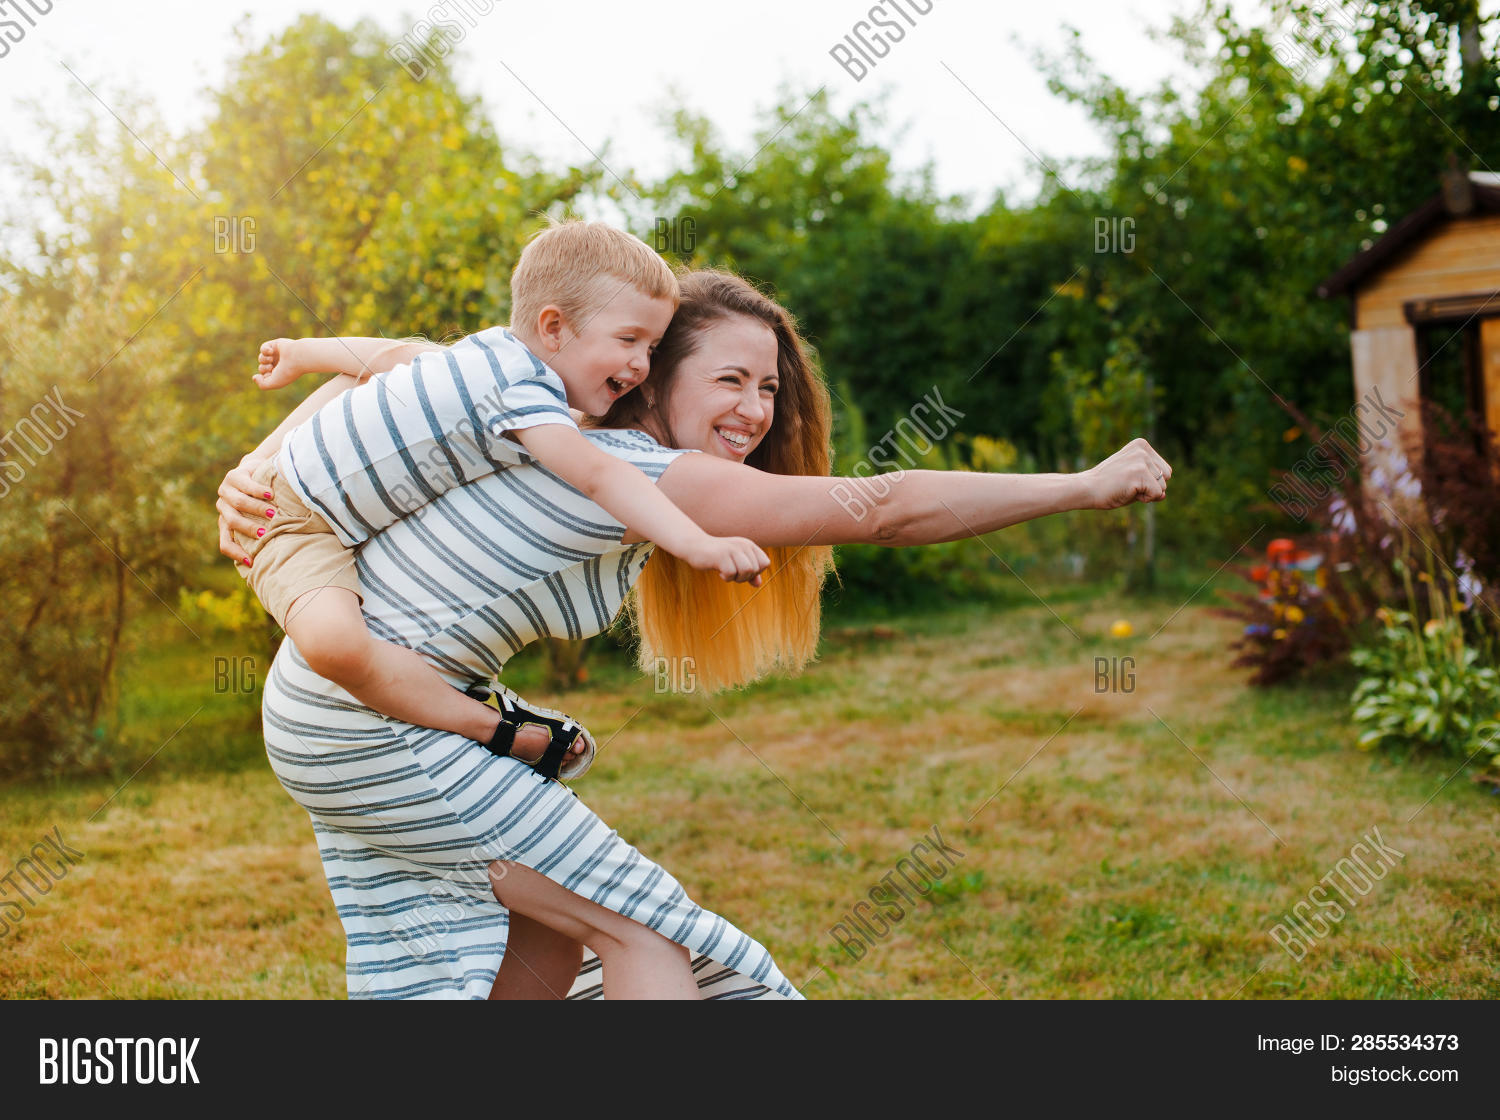 baby,beautiful,boy,child,childhood,cute,day,emotional,enjoy,family,female,flower,fun,green,hands,happiness,happy,high,holding,human,joy,kid,laughing,life,lift,little,love,mom,mother,motherhood,nature,outdoor,outside,parent,park,people,playing,smile,smiling,son,spring,summer,sun,sunny,toddler,together,up,woman,young